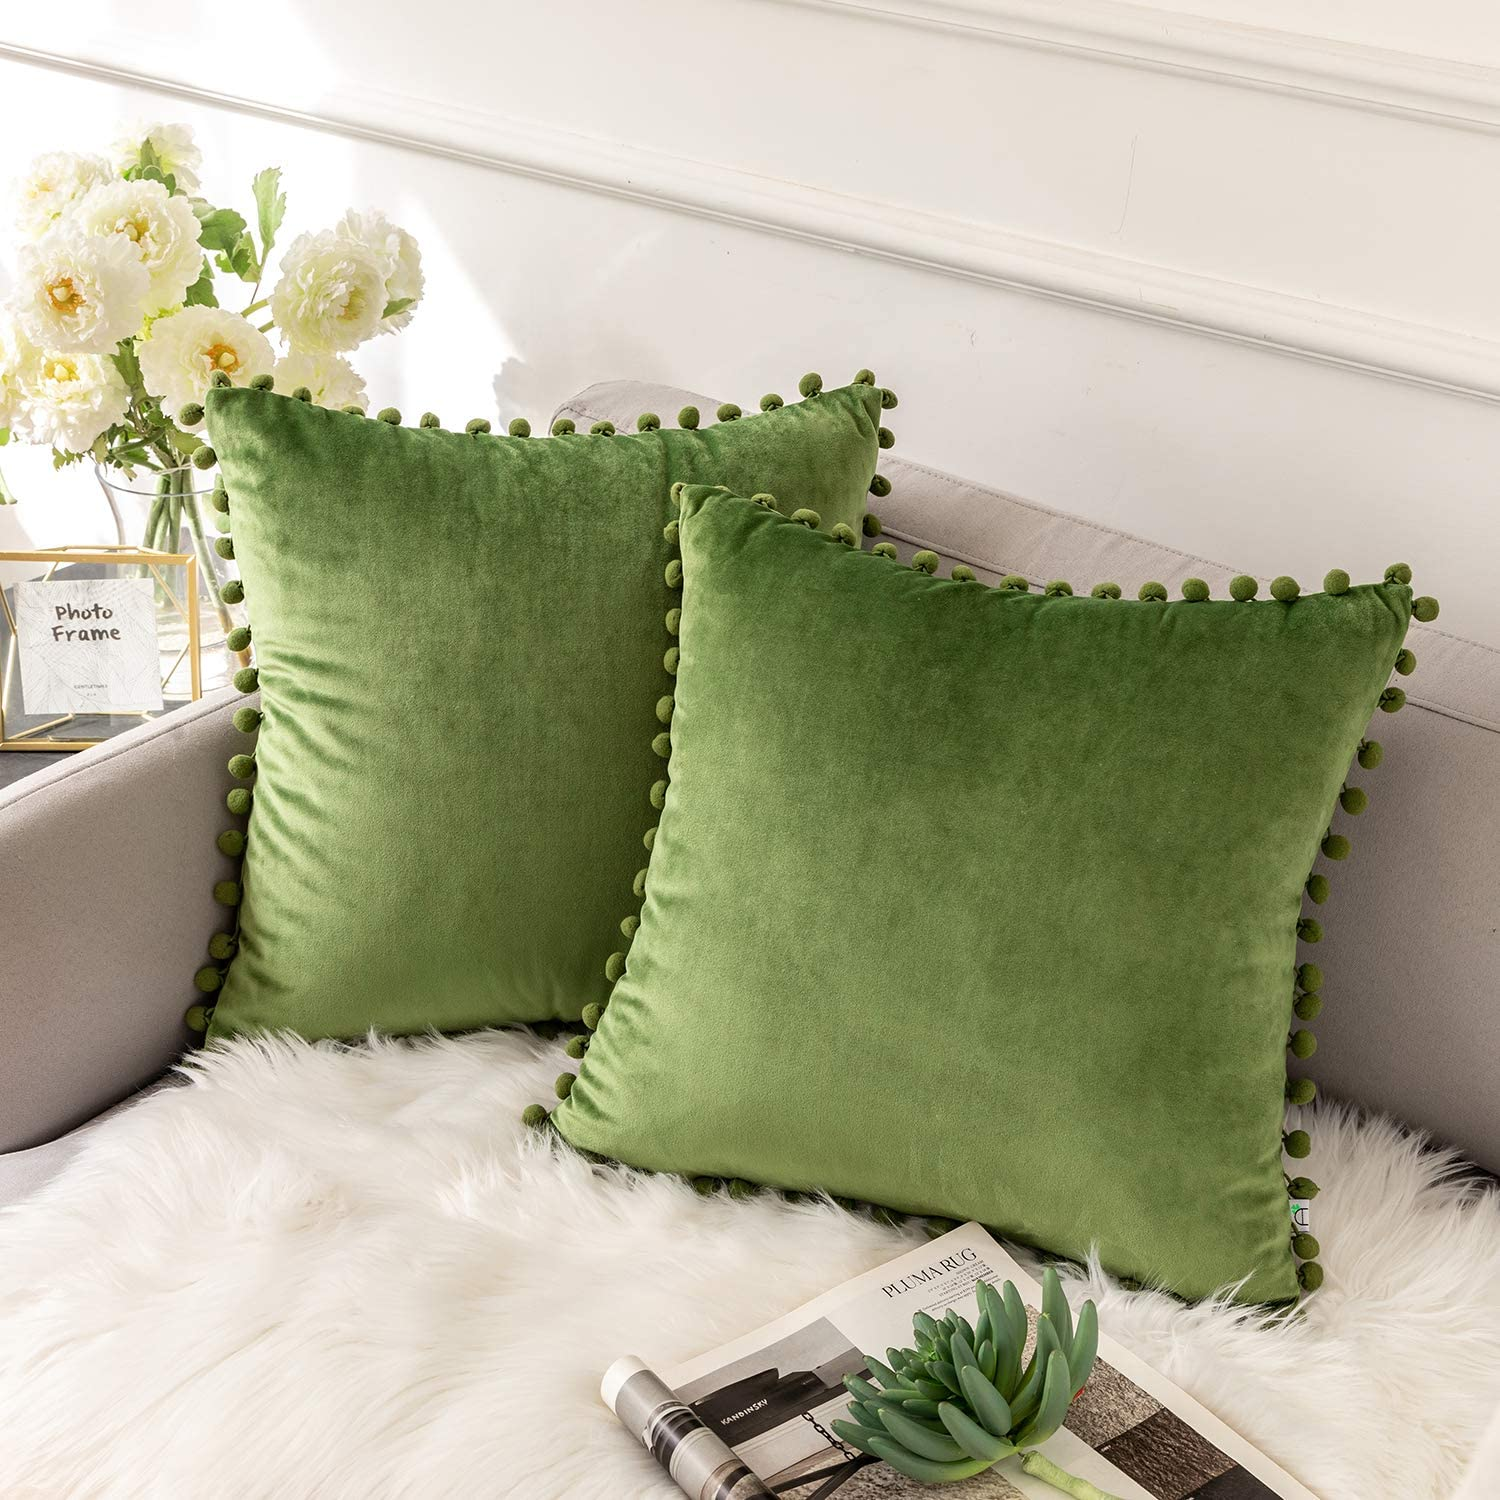 Ashler Throw Pillow Cases with Soft Pom Poms Velvet Plush Vibrant Elegant Cushion Covers, Pack of 2, Green 26 x 26 inches 66 x 66 cm